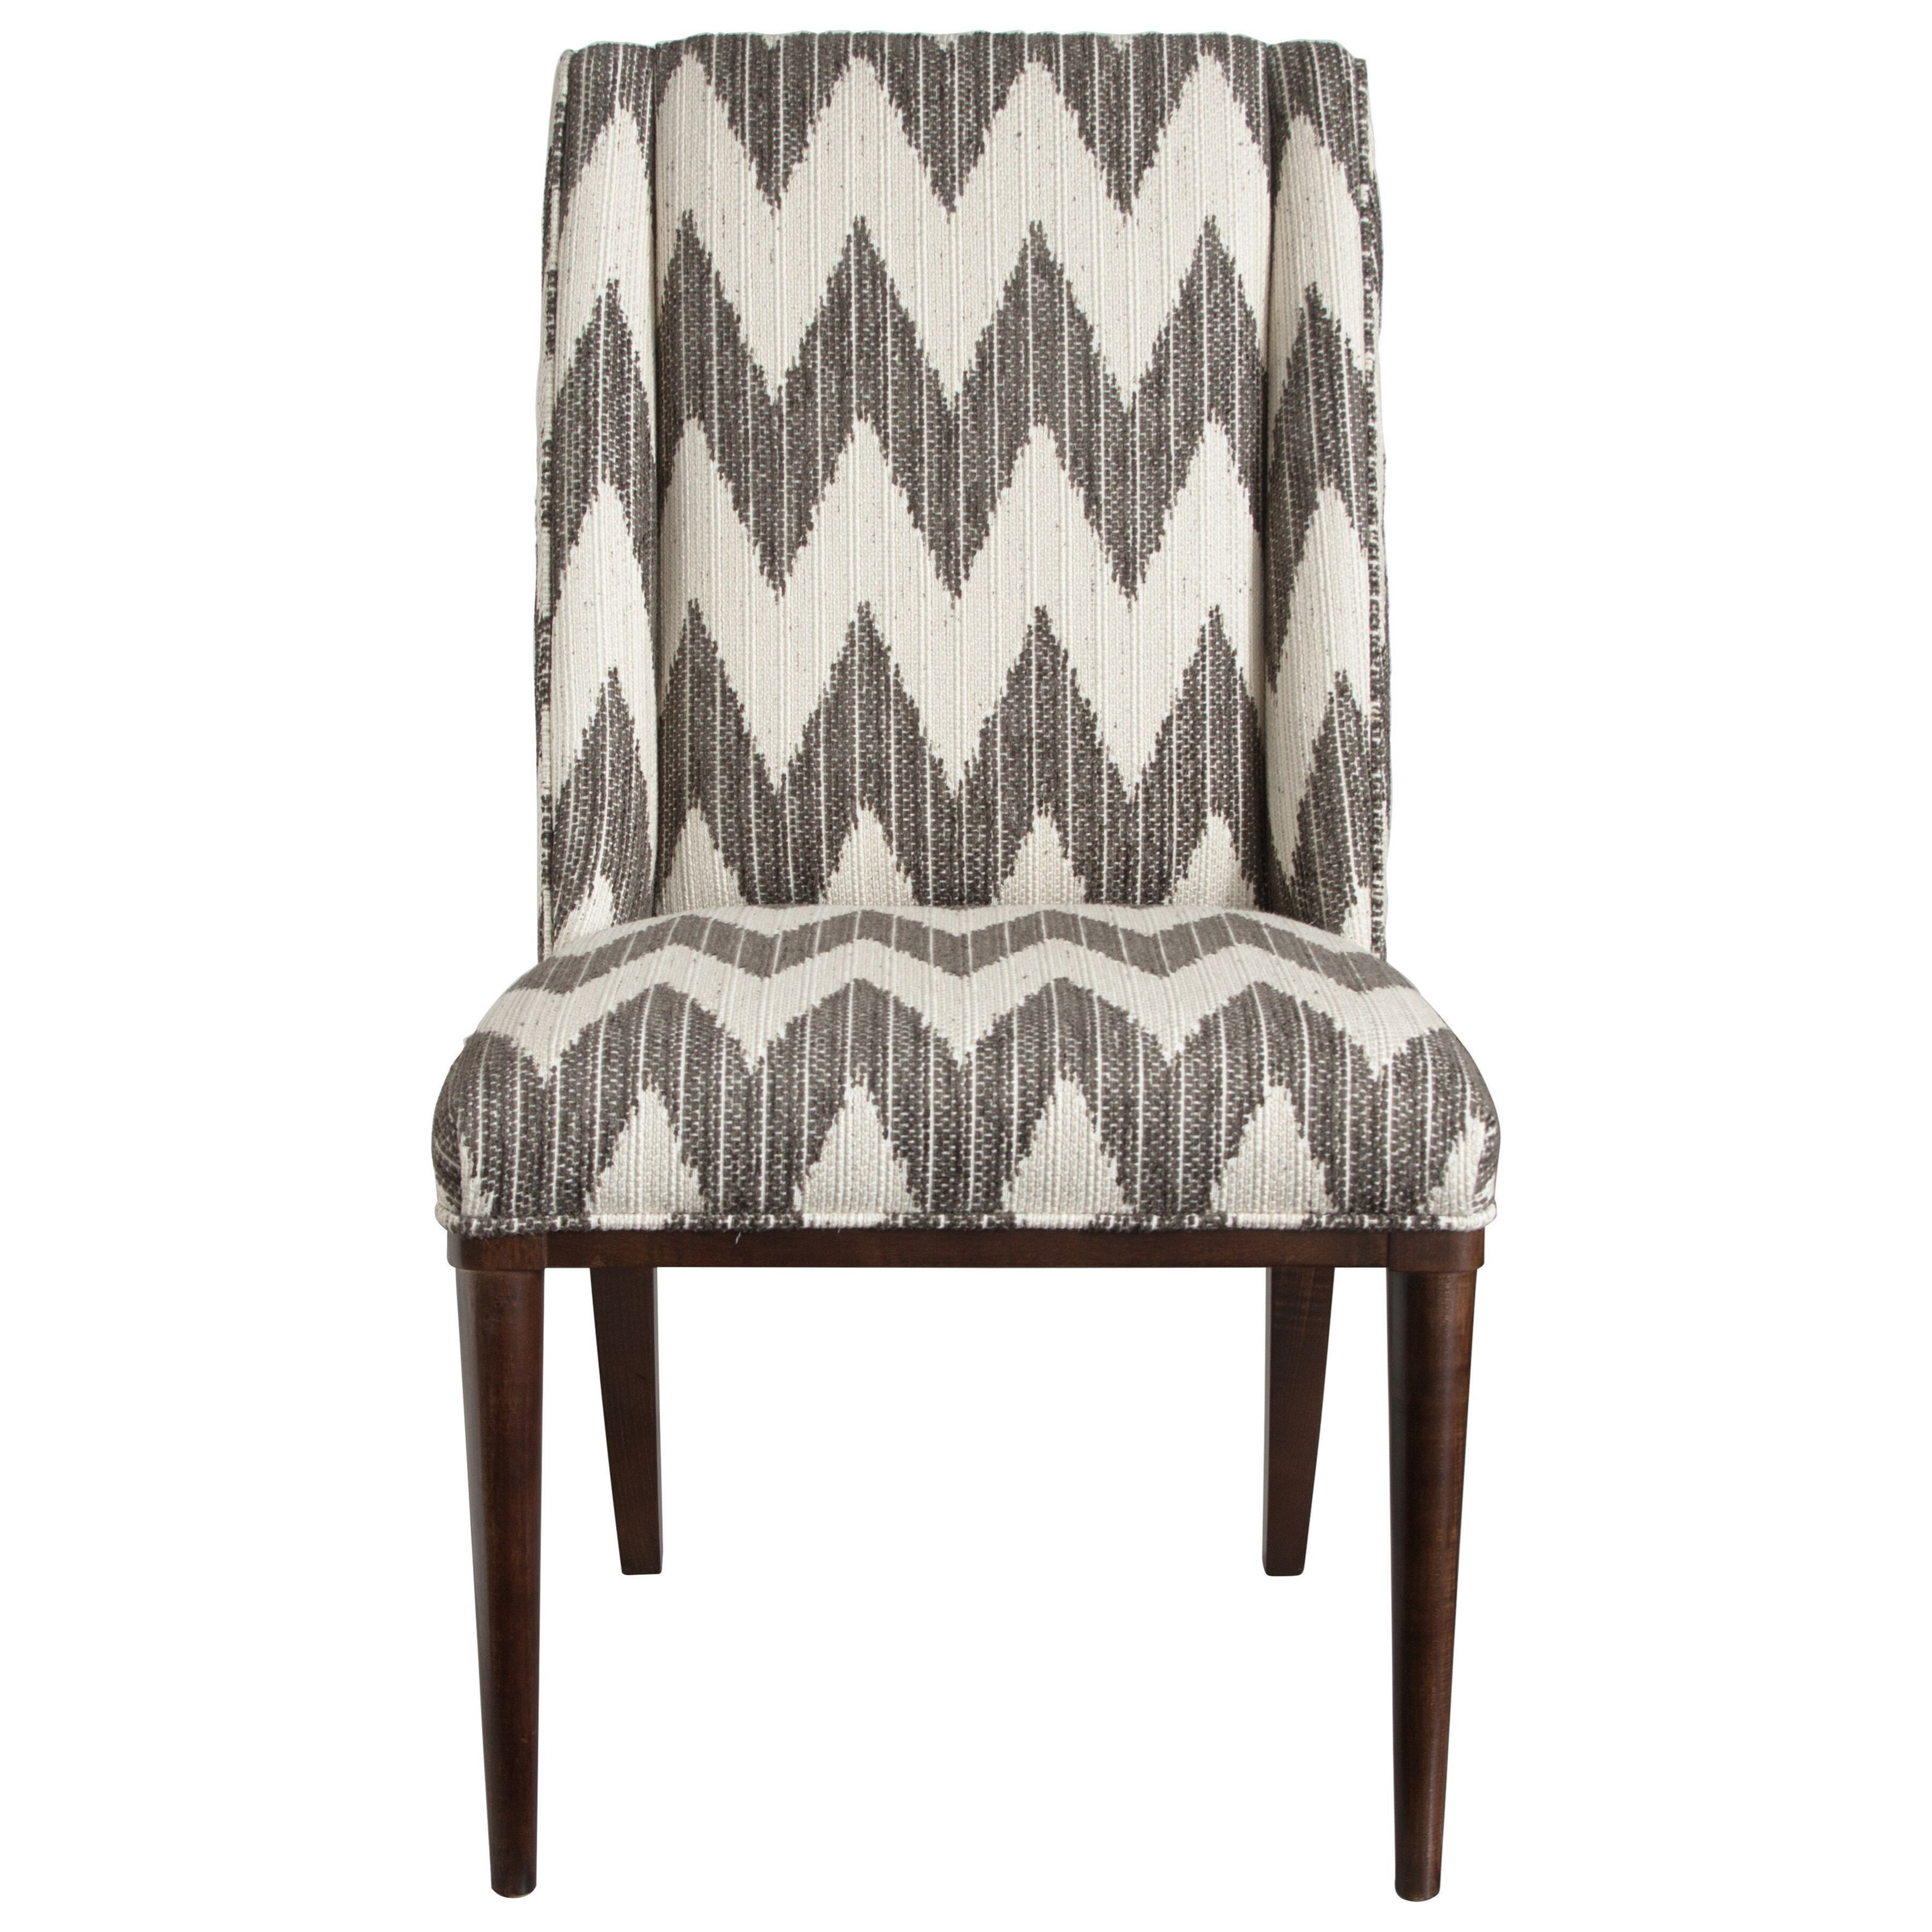 Ainsley Side Chair by Bassett at Fisher Home Furnishings